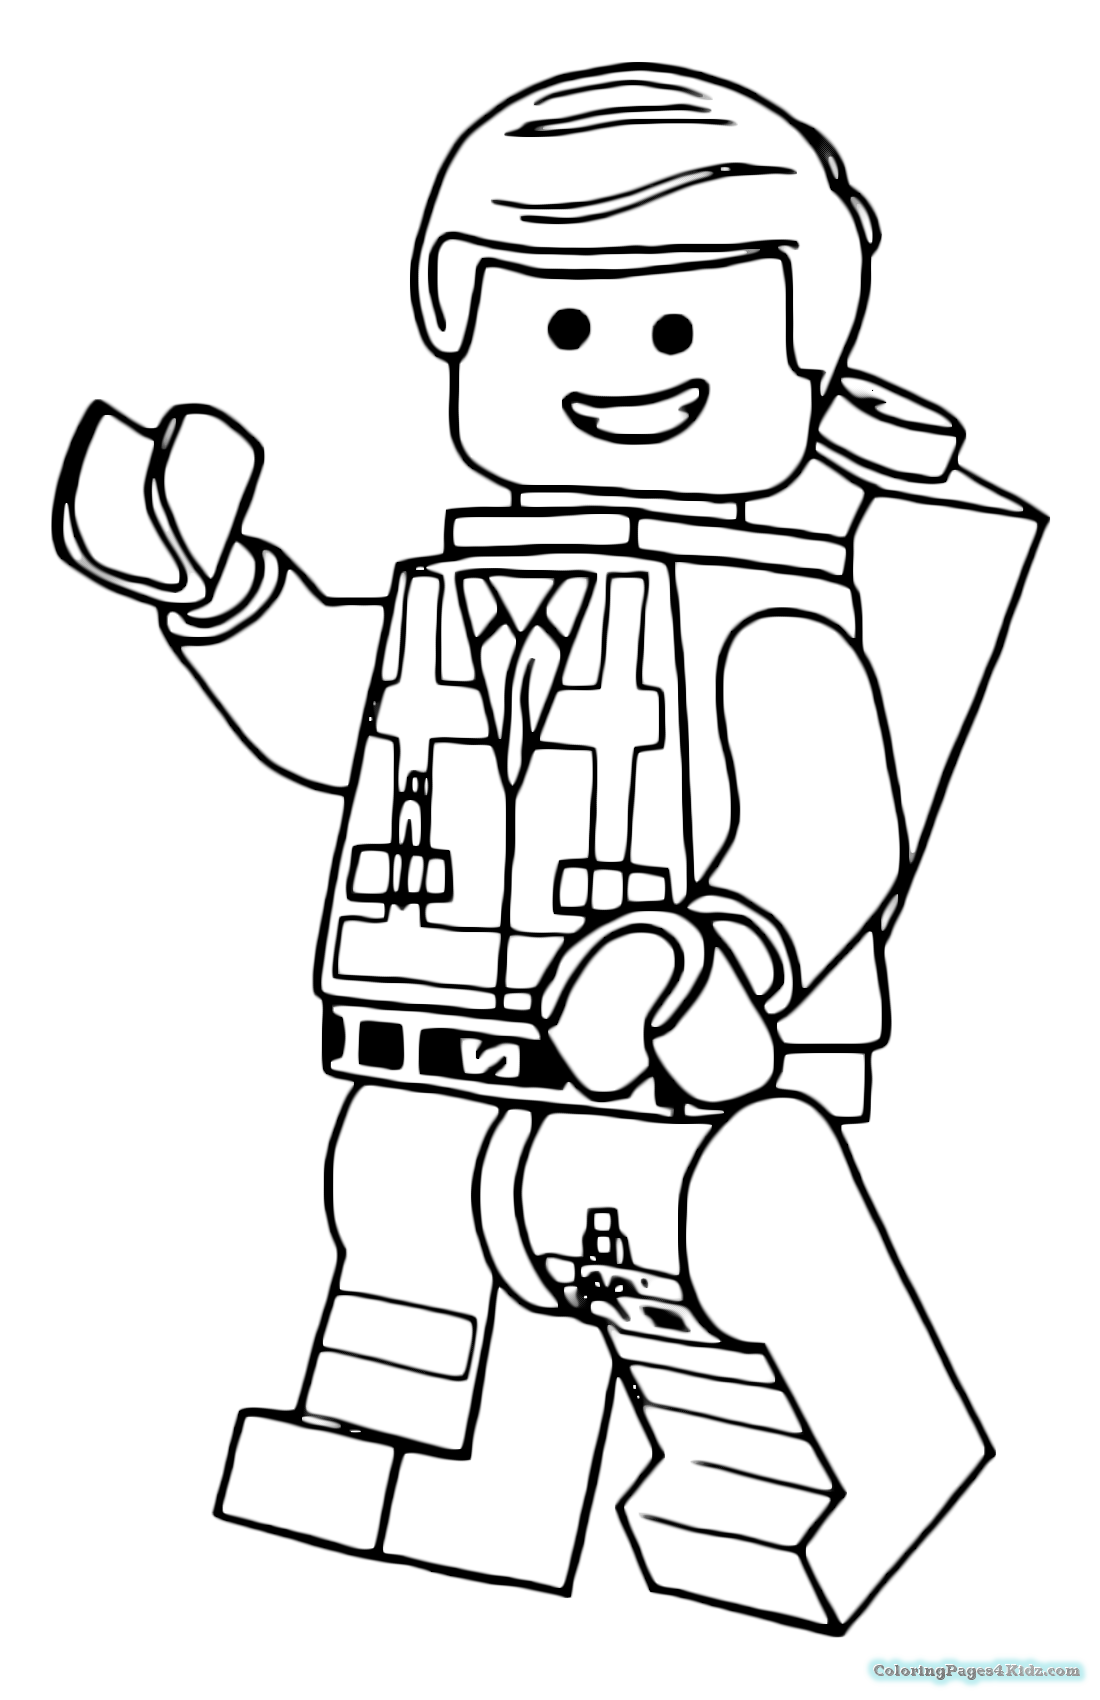 lego star wars printable coloring pages lego battle droid coloring page from lego star wars lego printable wars coloring pages star